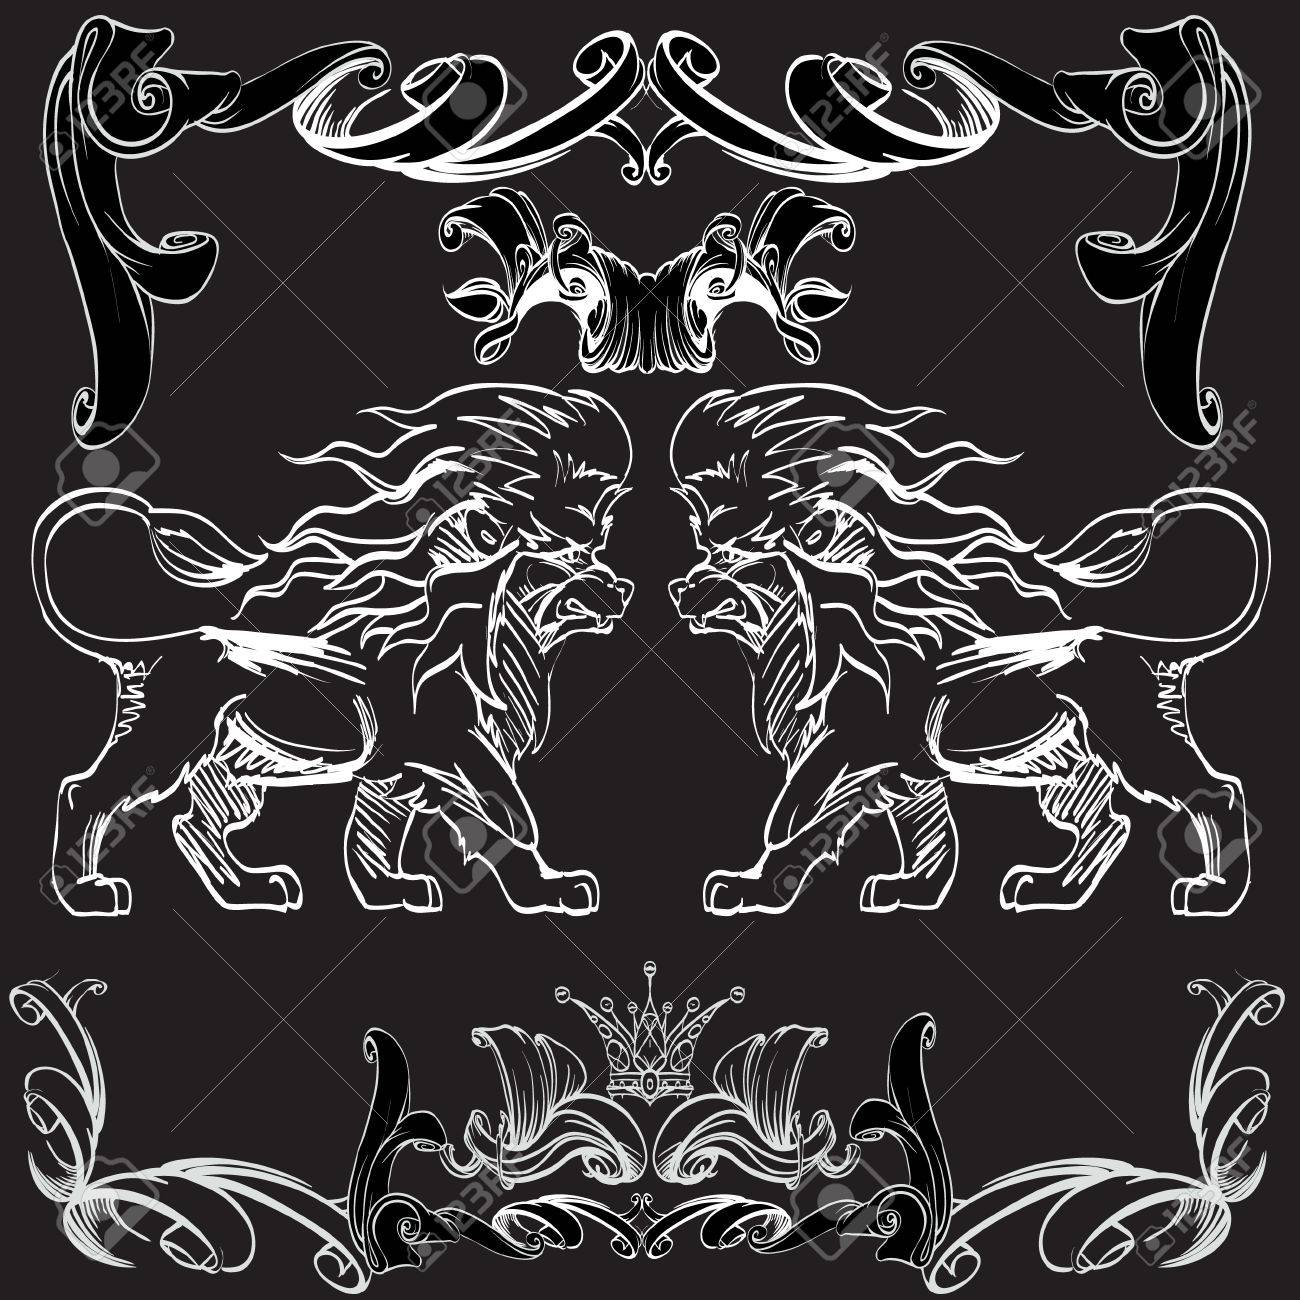 heraldry background for the logo, emblem, lion and shield cloth,